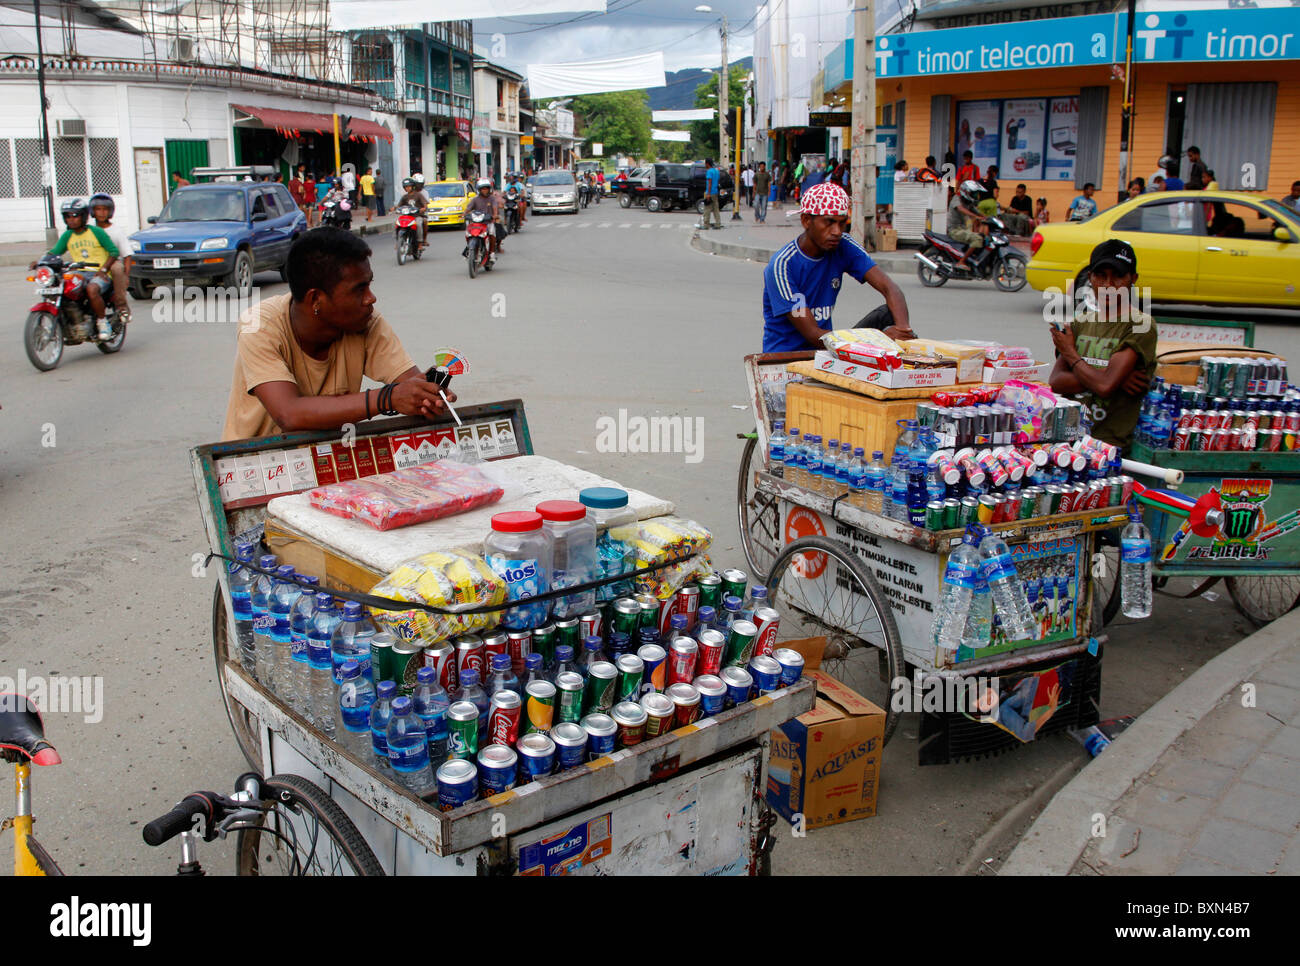 Trader on bicycle carts selling refreshments, Colmera commercial district of Dili capital of Timor Leste (East Timor) - Stock Image